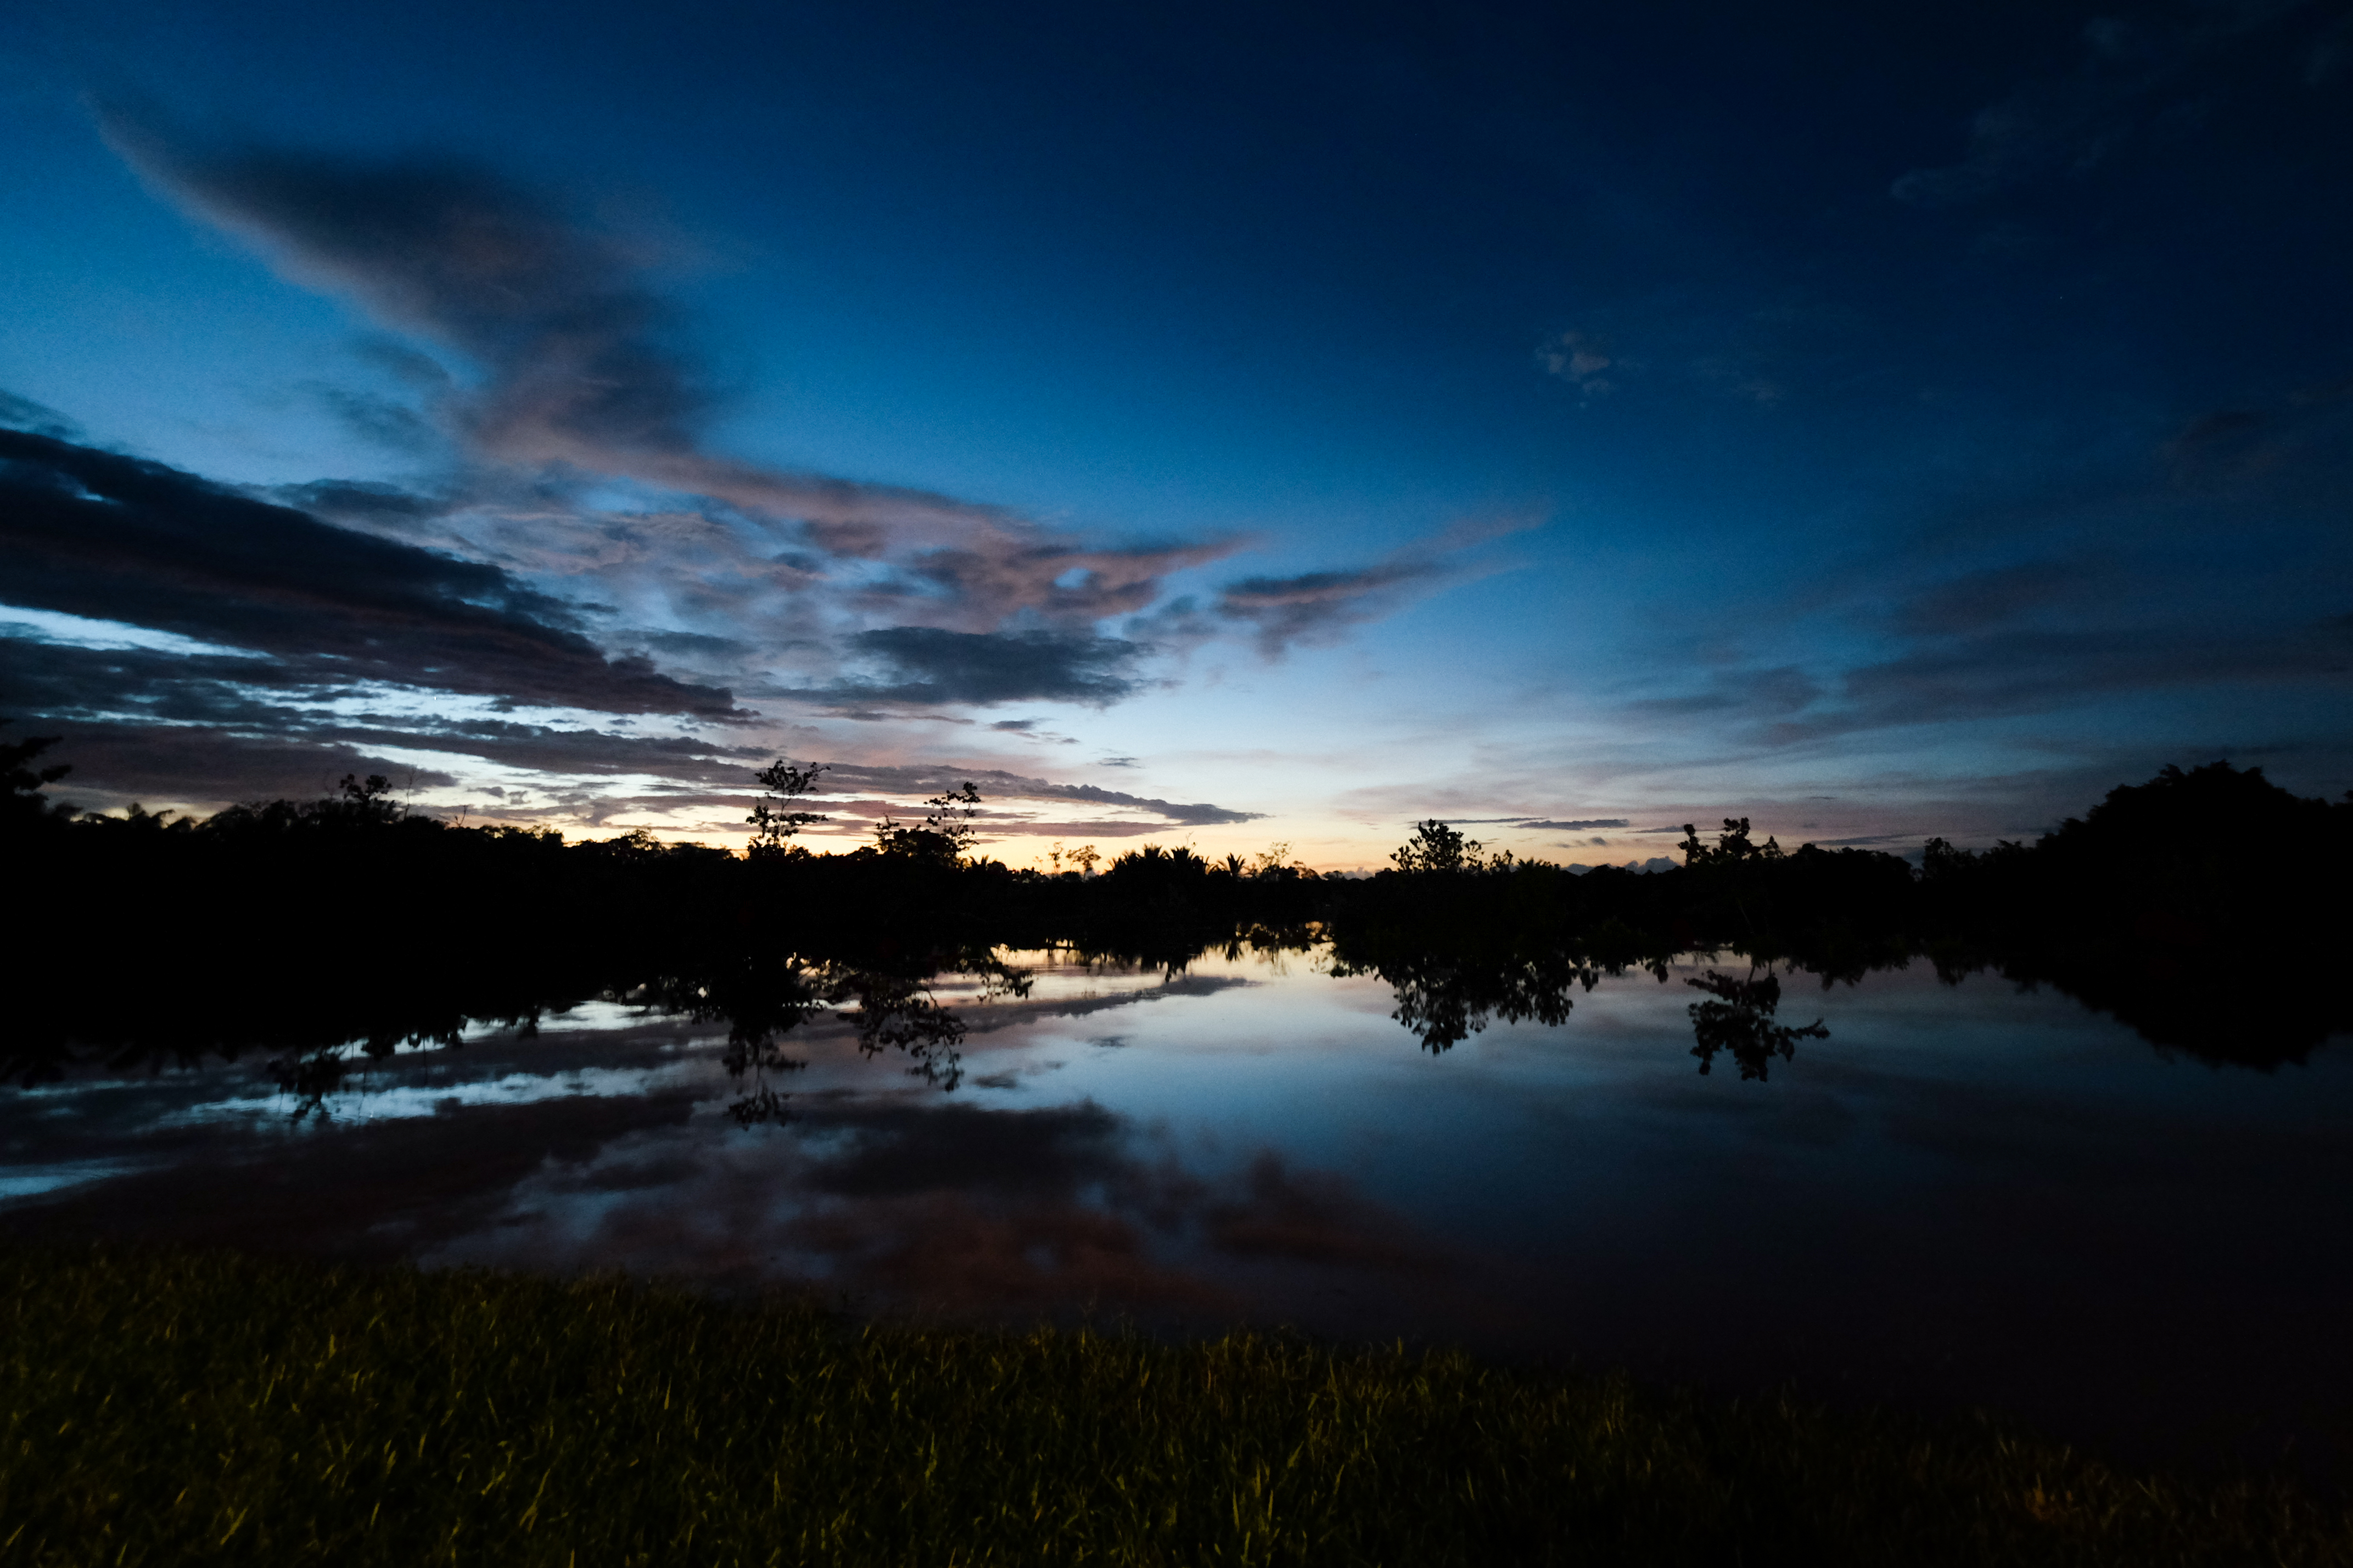 112882 download wallpaper Nature, Lake, Dusk, Twilight, Trees, Reflection, Evening screensavers and pictures for free